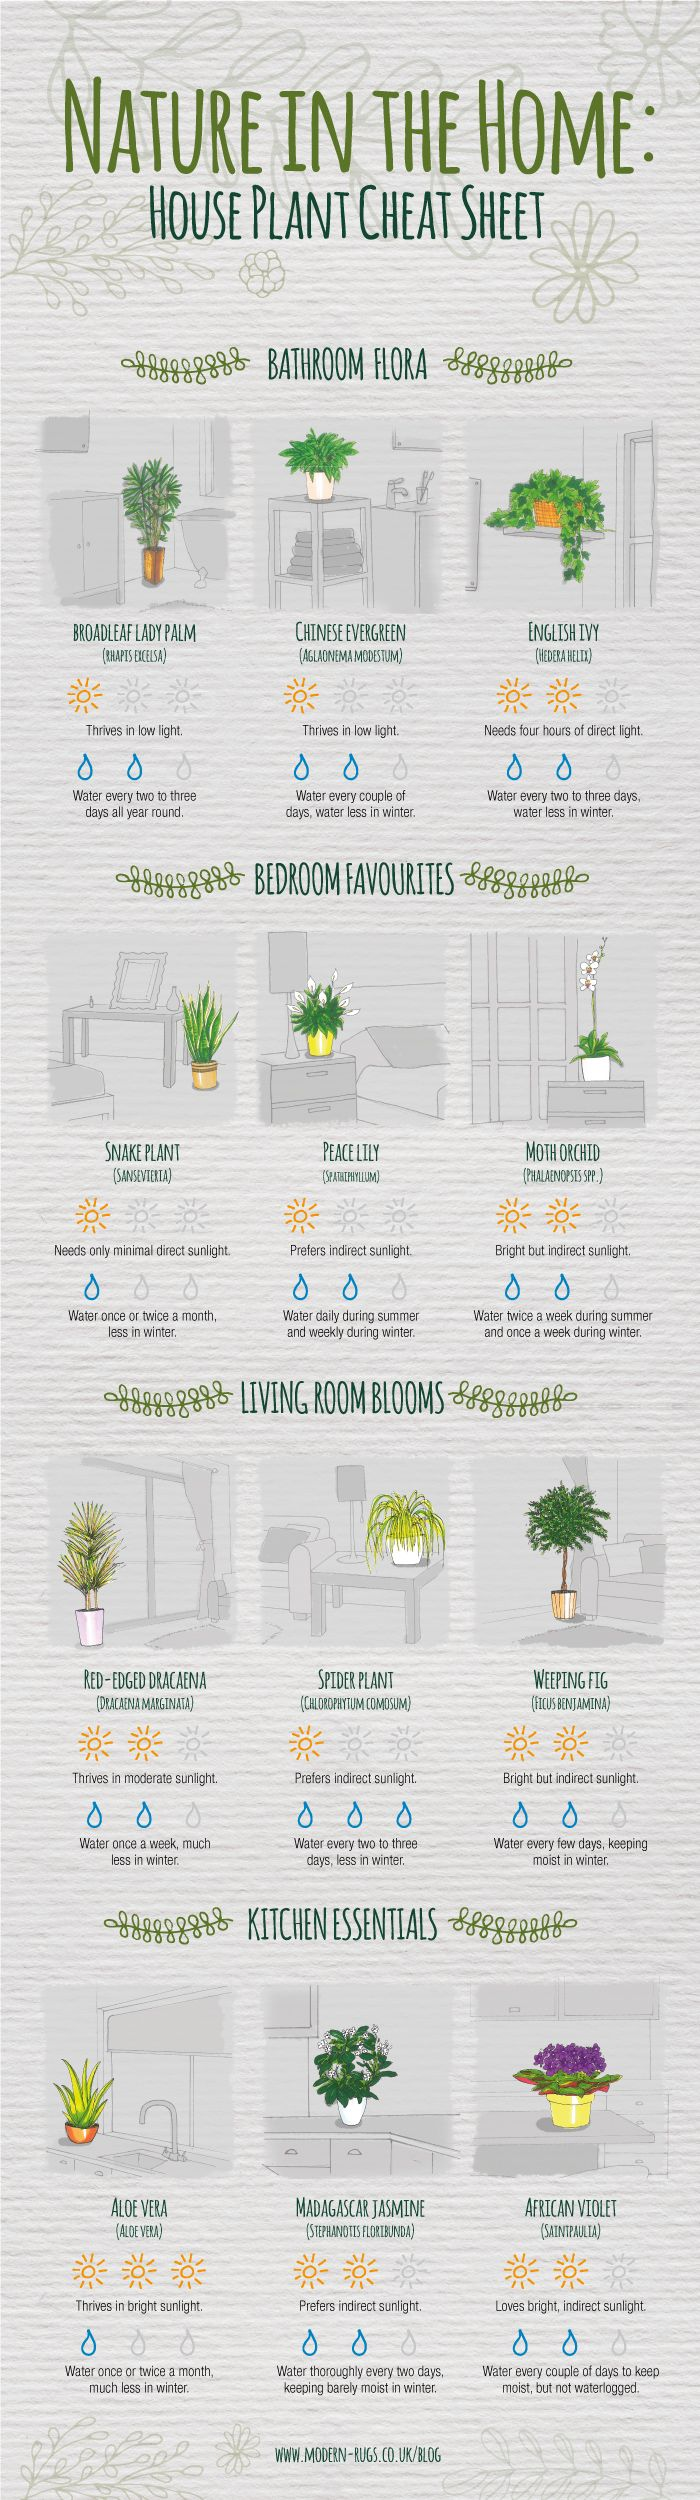 Indoor Plants Cheat Sheet #Infographic #Flower #HomeImprovement